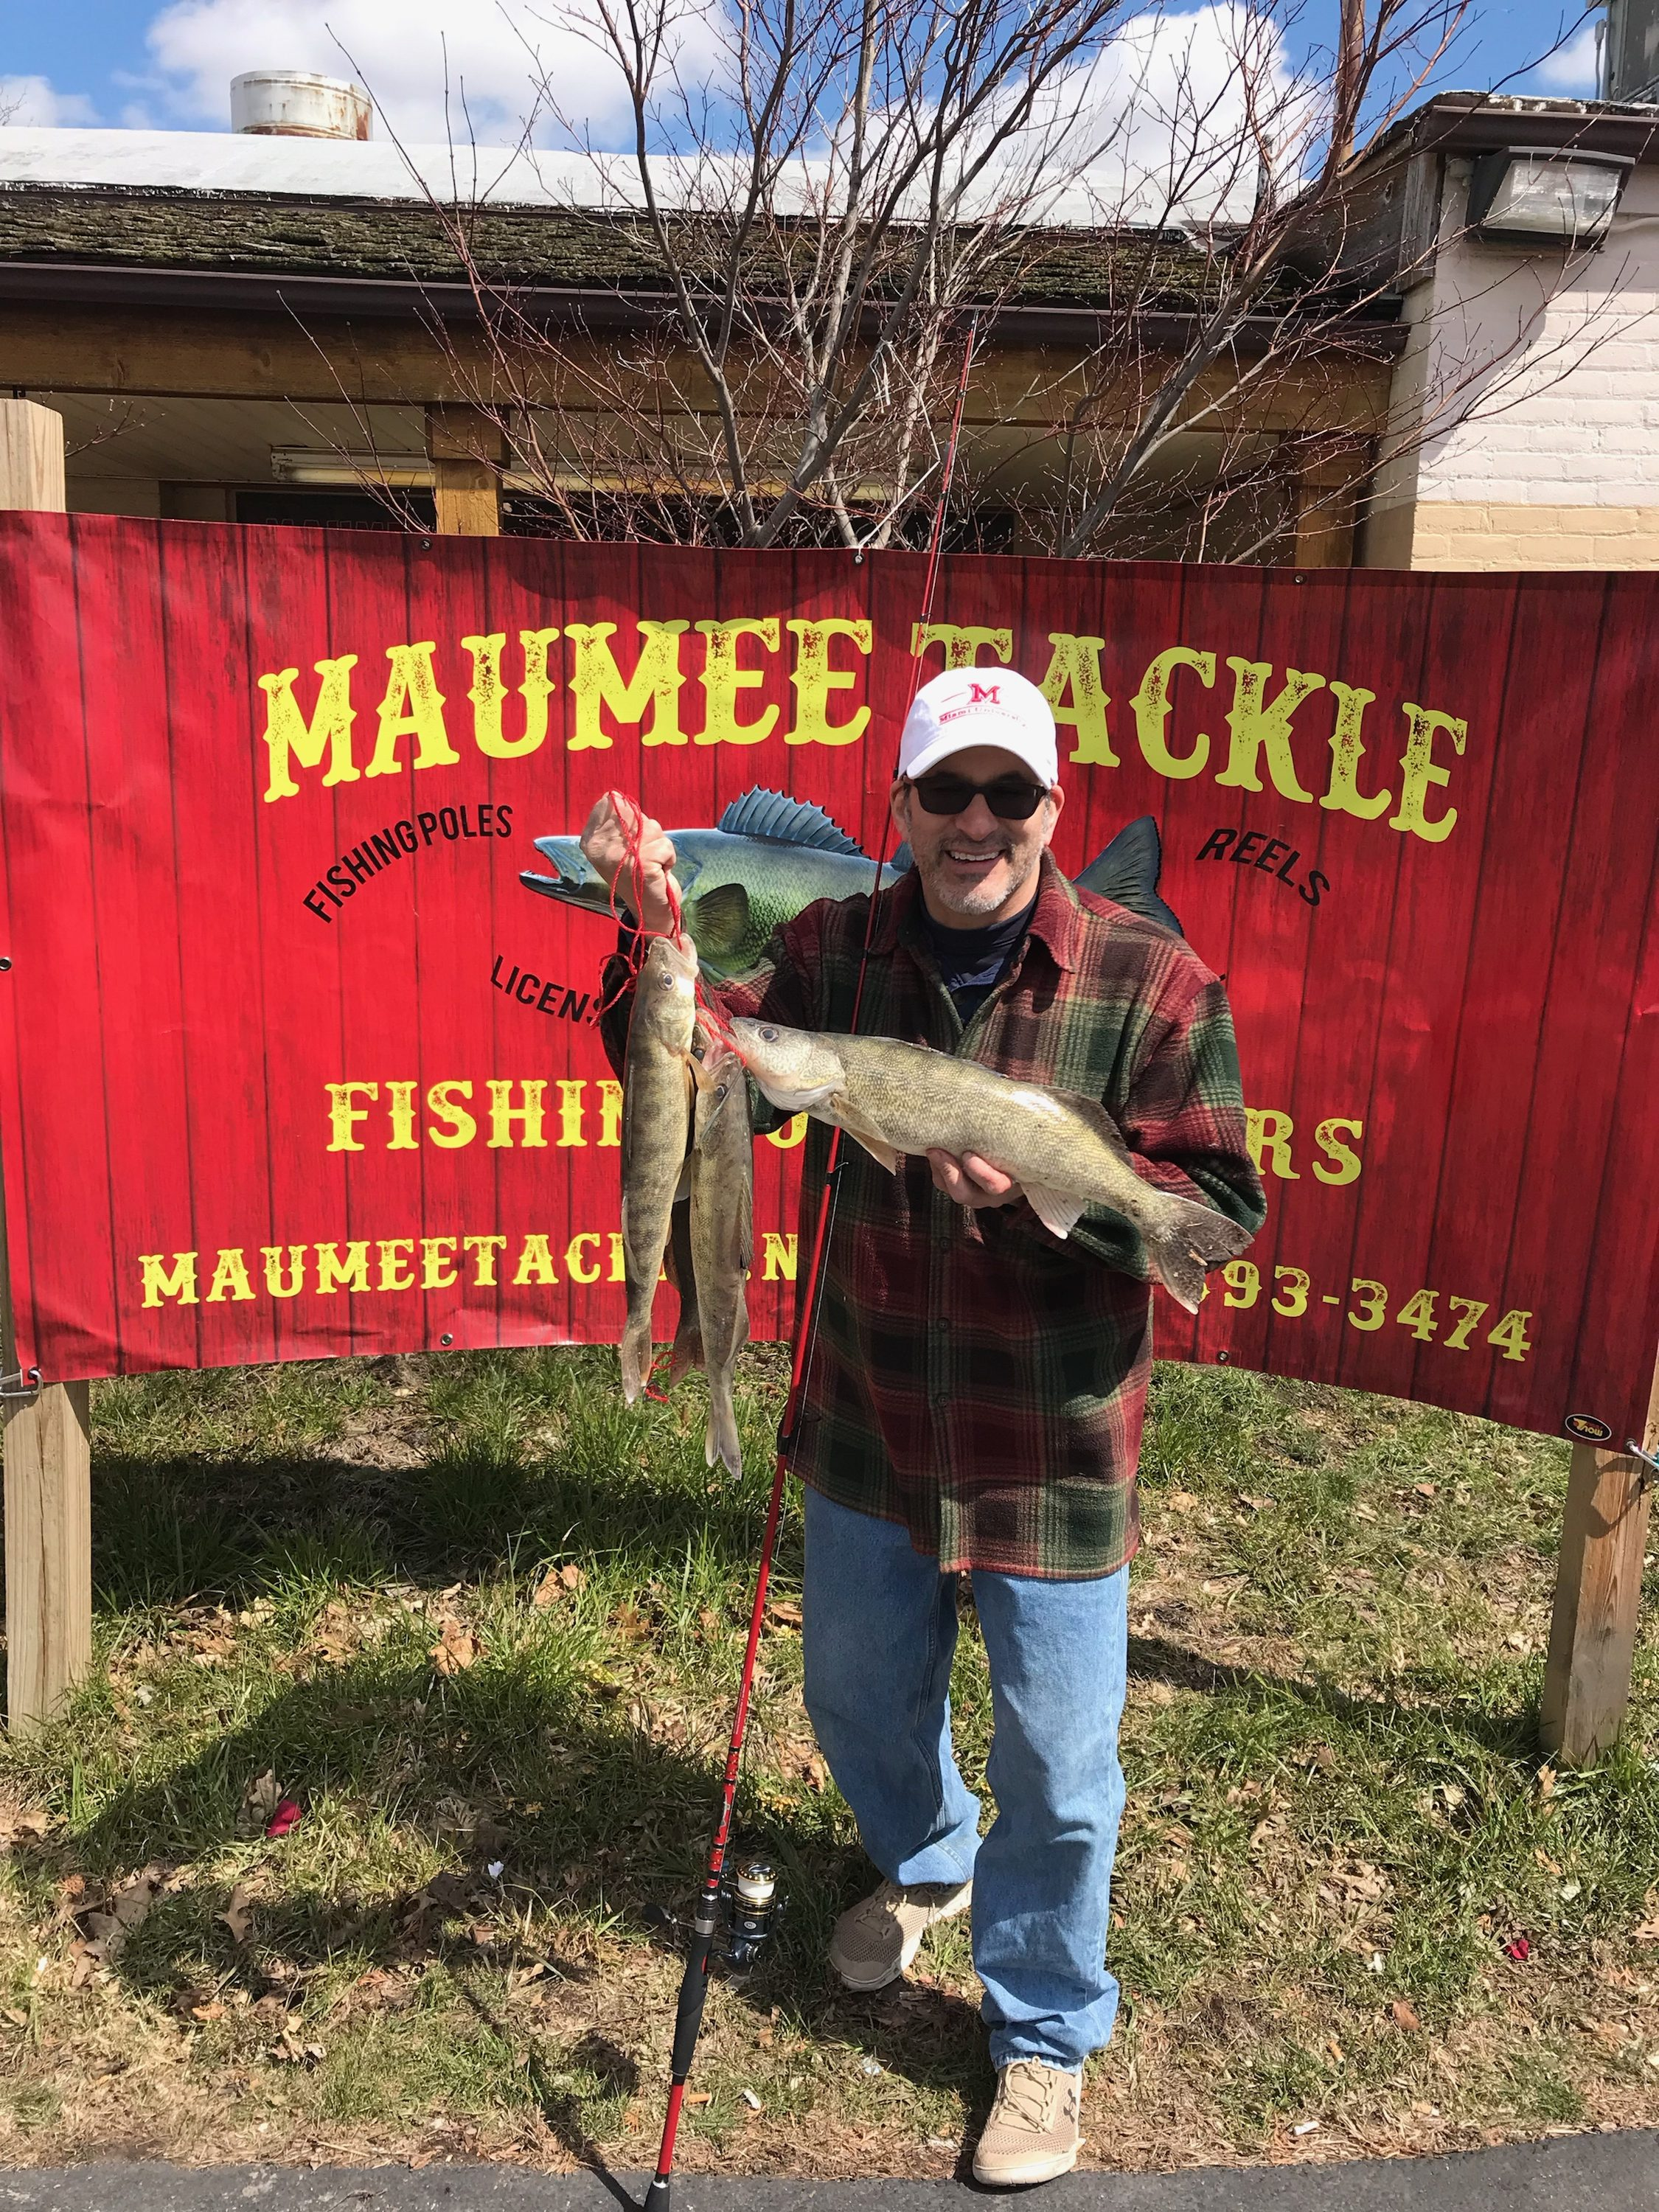 Maumee river report 8 april 2018 for Maumee river fishing report